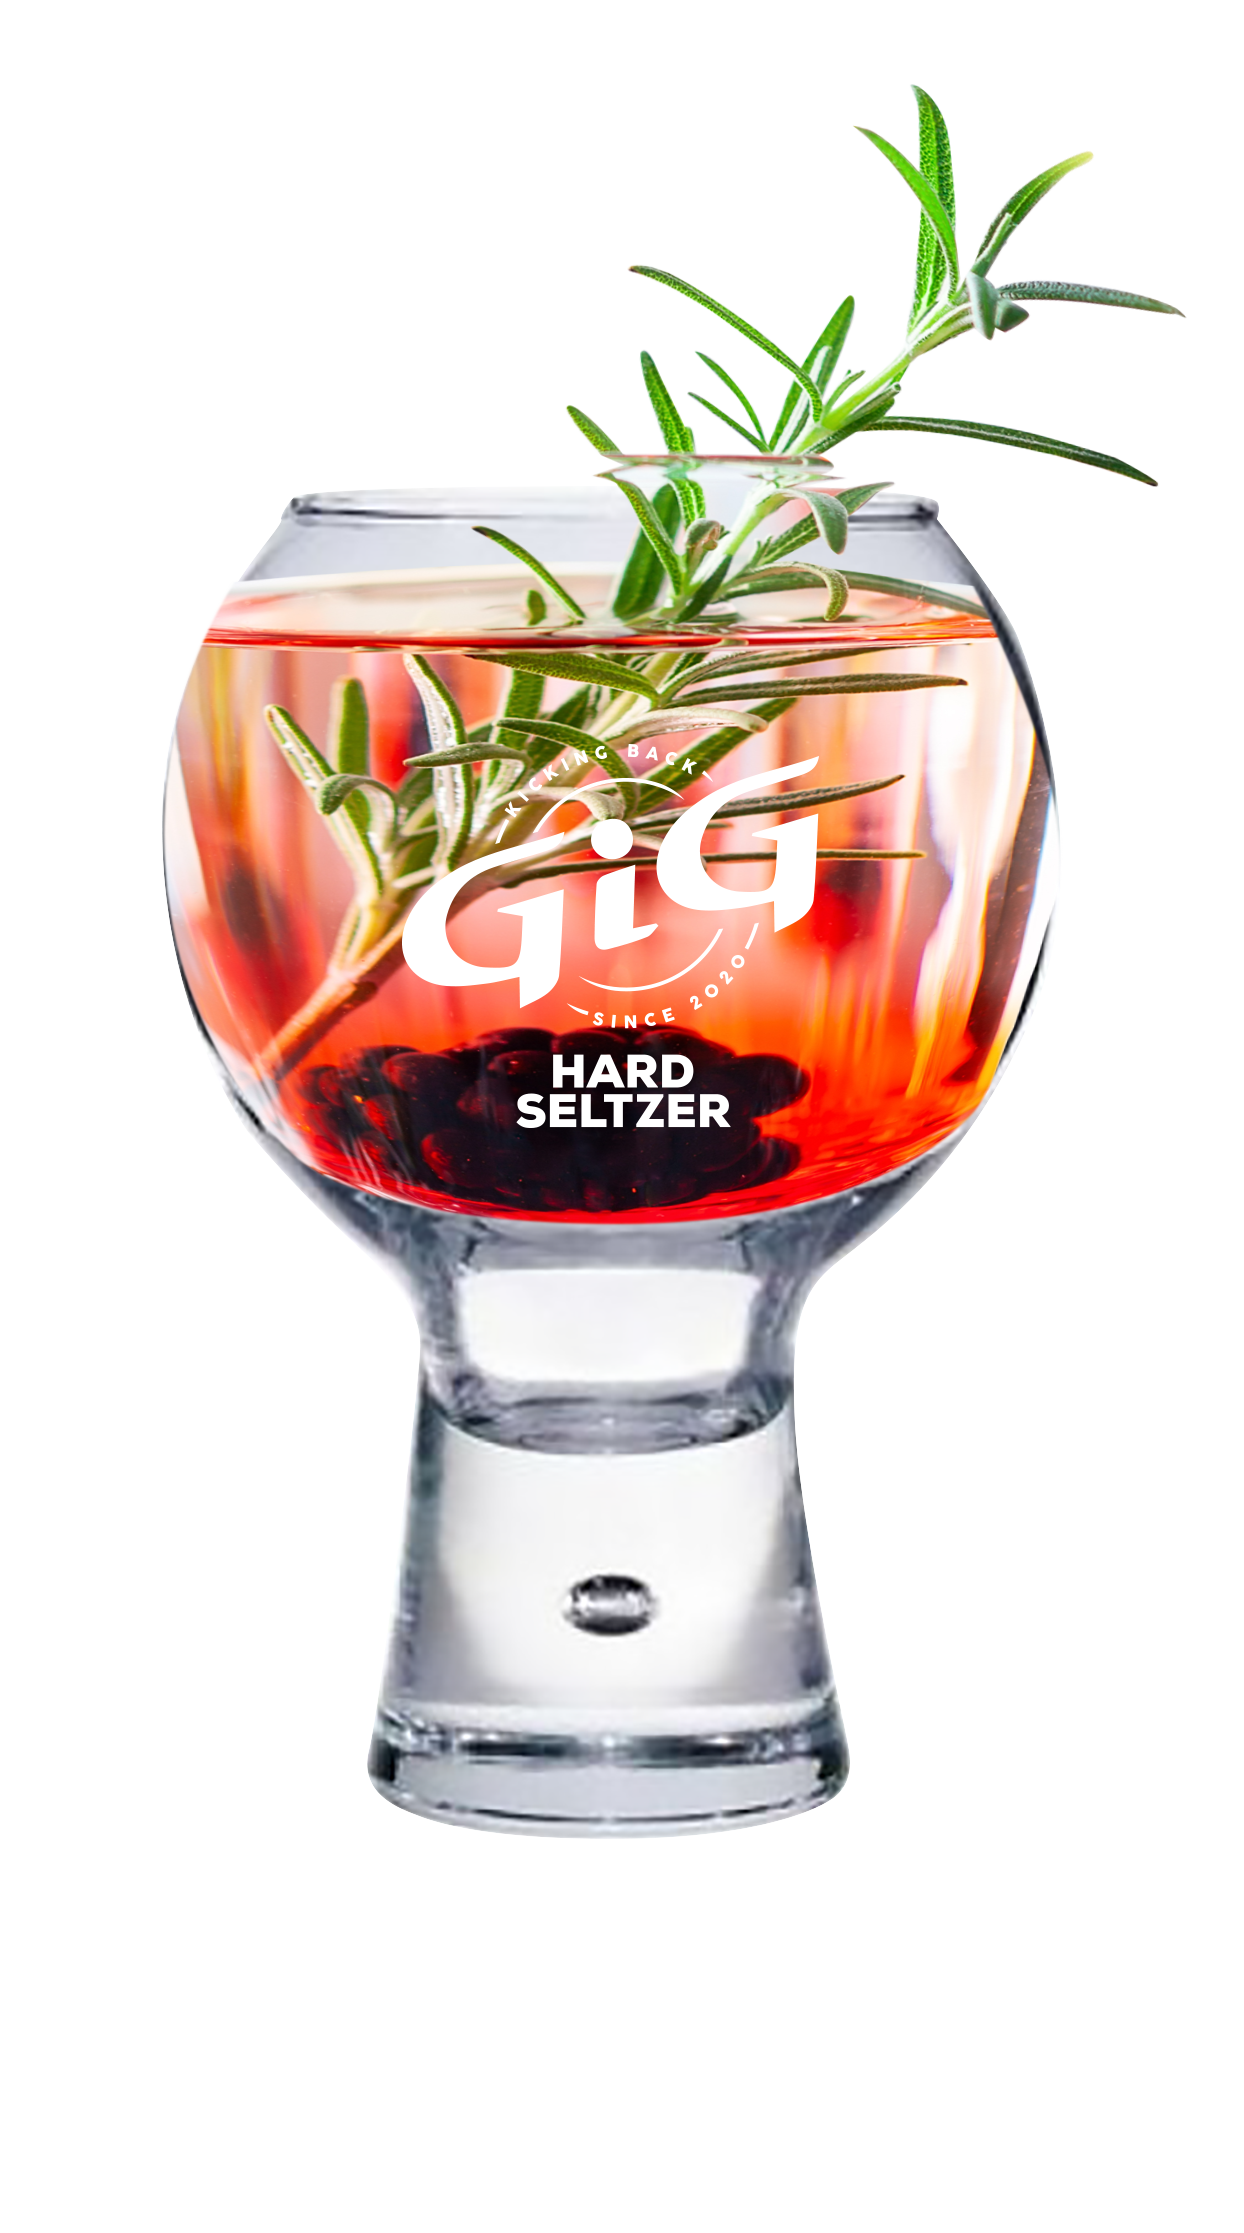 GiG Hard Seltzer Rosemary cocktail